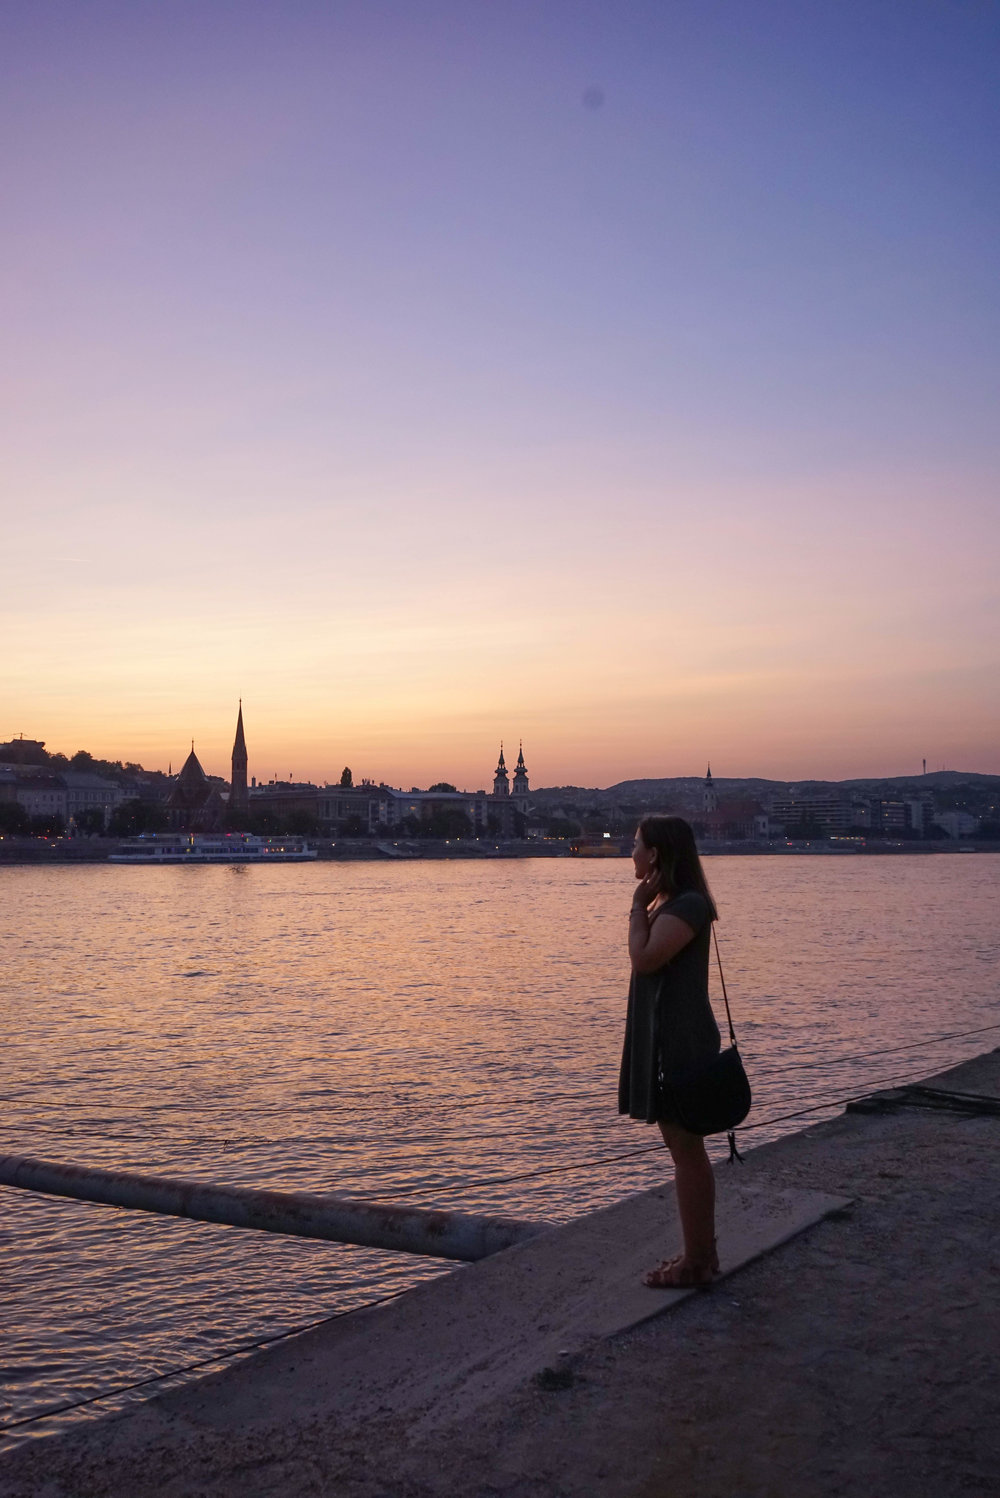 Sunset on the Danube | Top 7 Things to do in Budapest